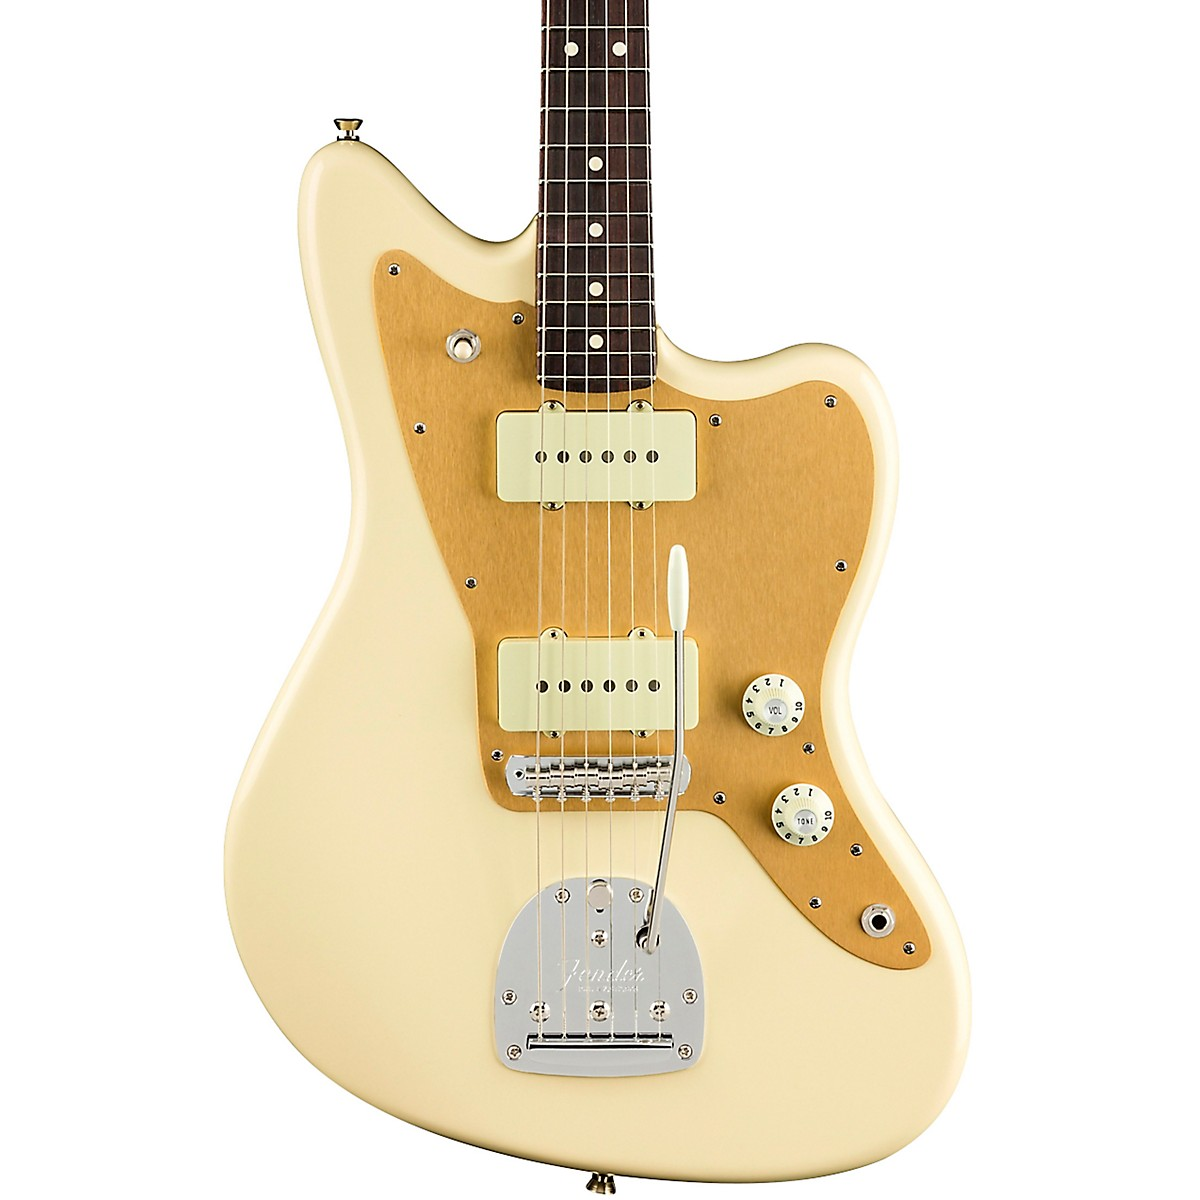 Fender American Professional Jazzmaster Rosewood Neck Limited Edition Electric Guitar